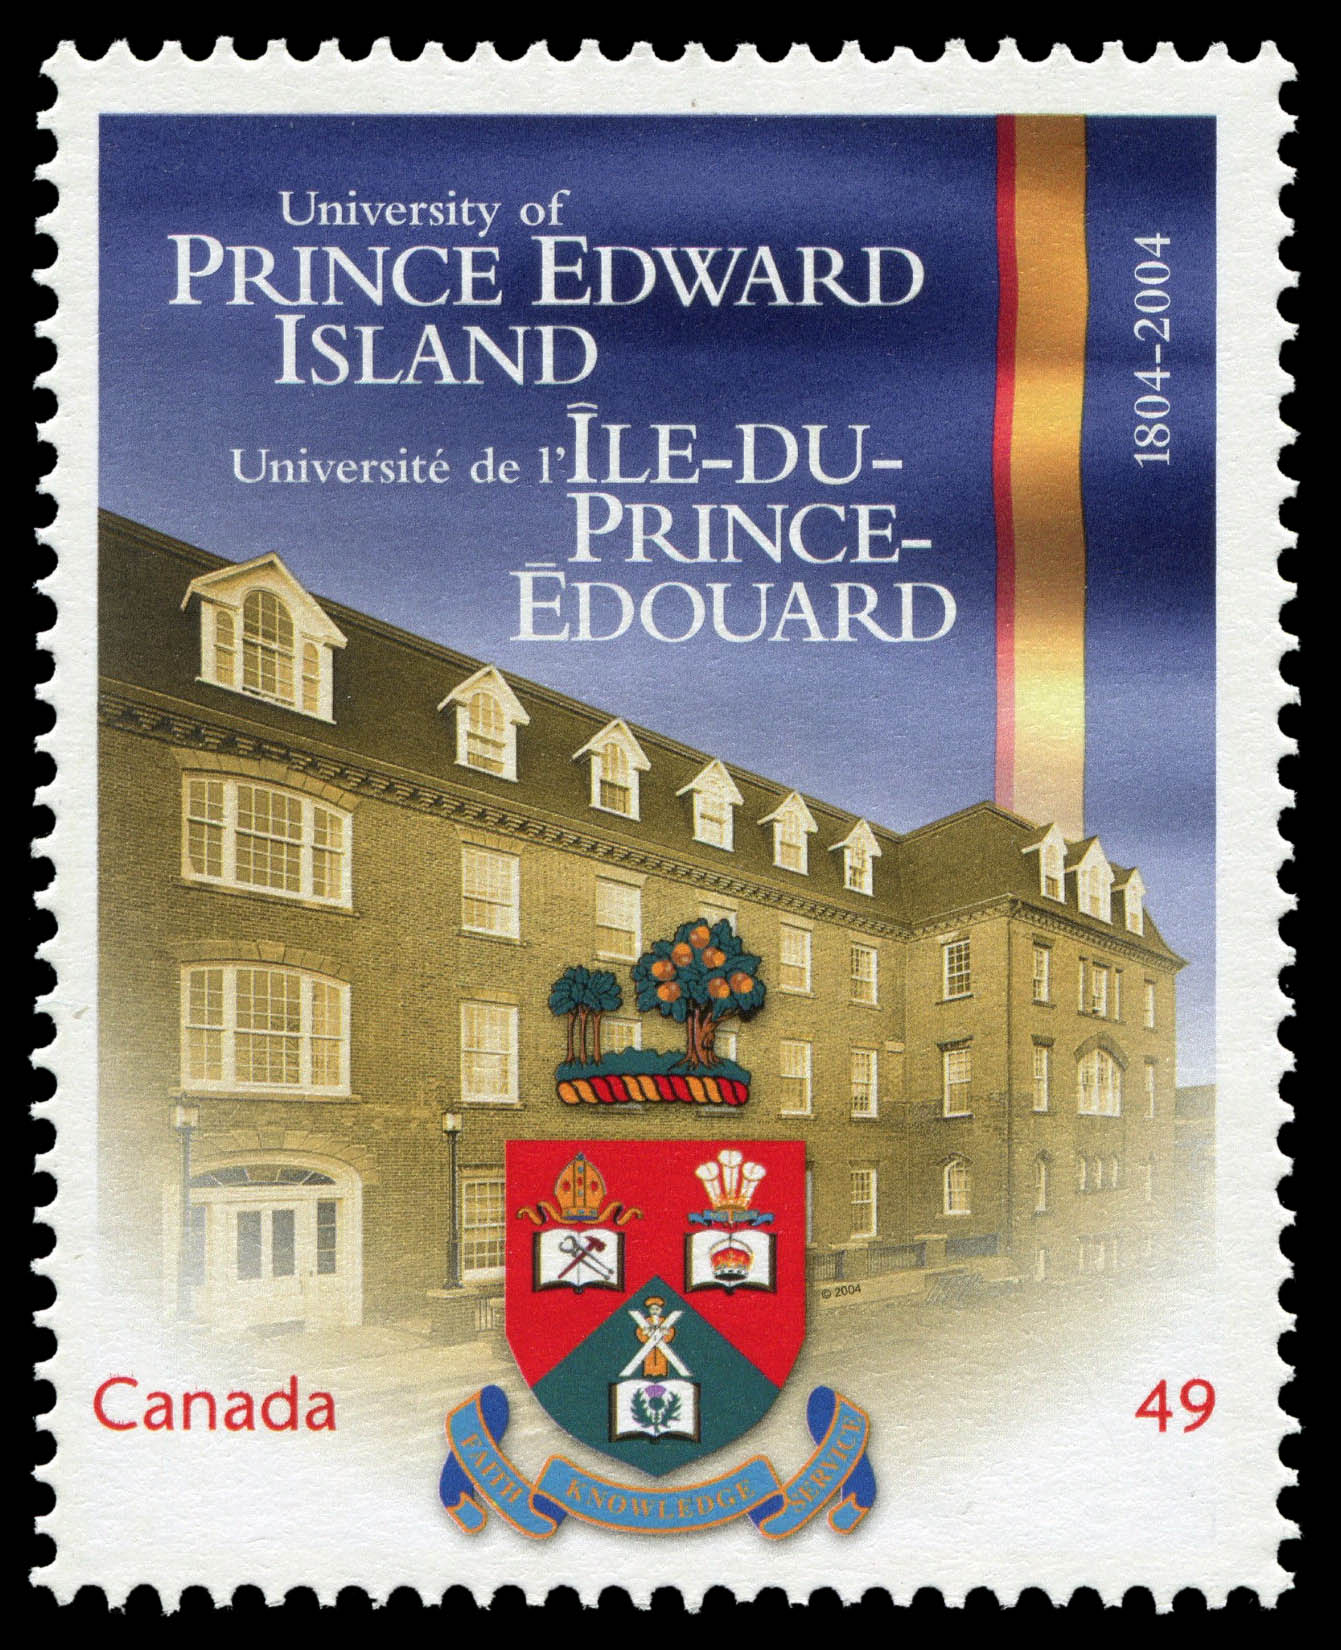 University of Prince Edward Island, 1804-2004 Canada Postage Stamp | Canadian Universities